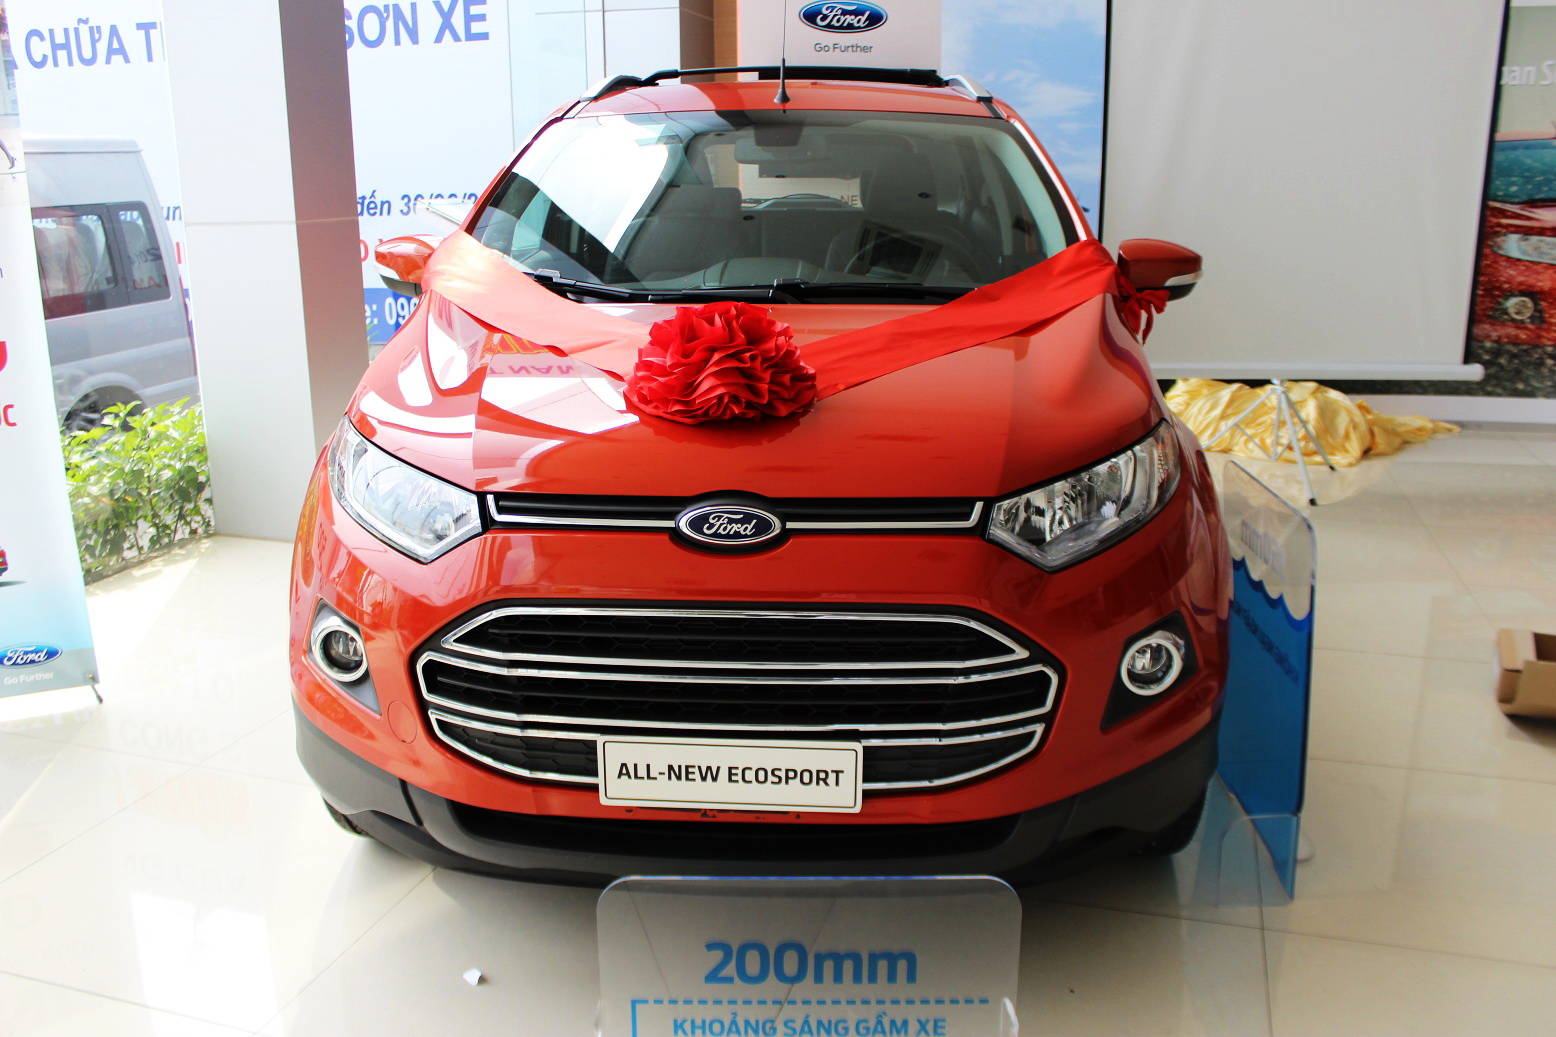 All-New EcoSport Specs Data